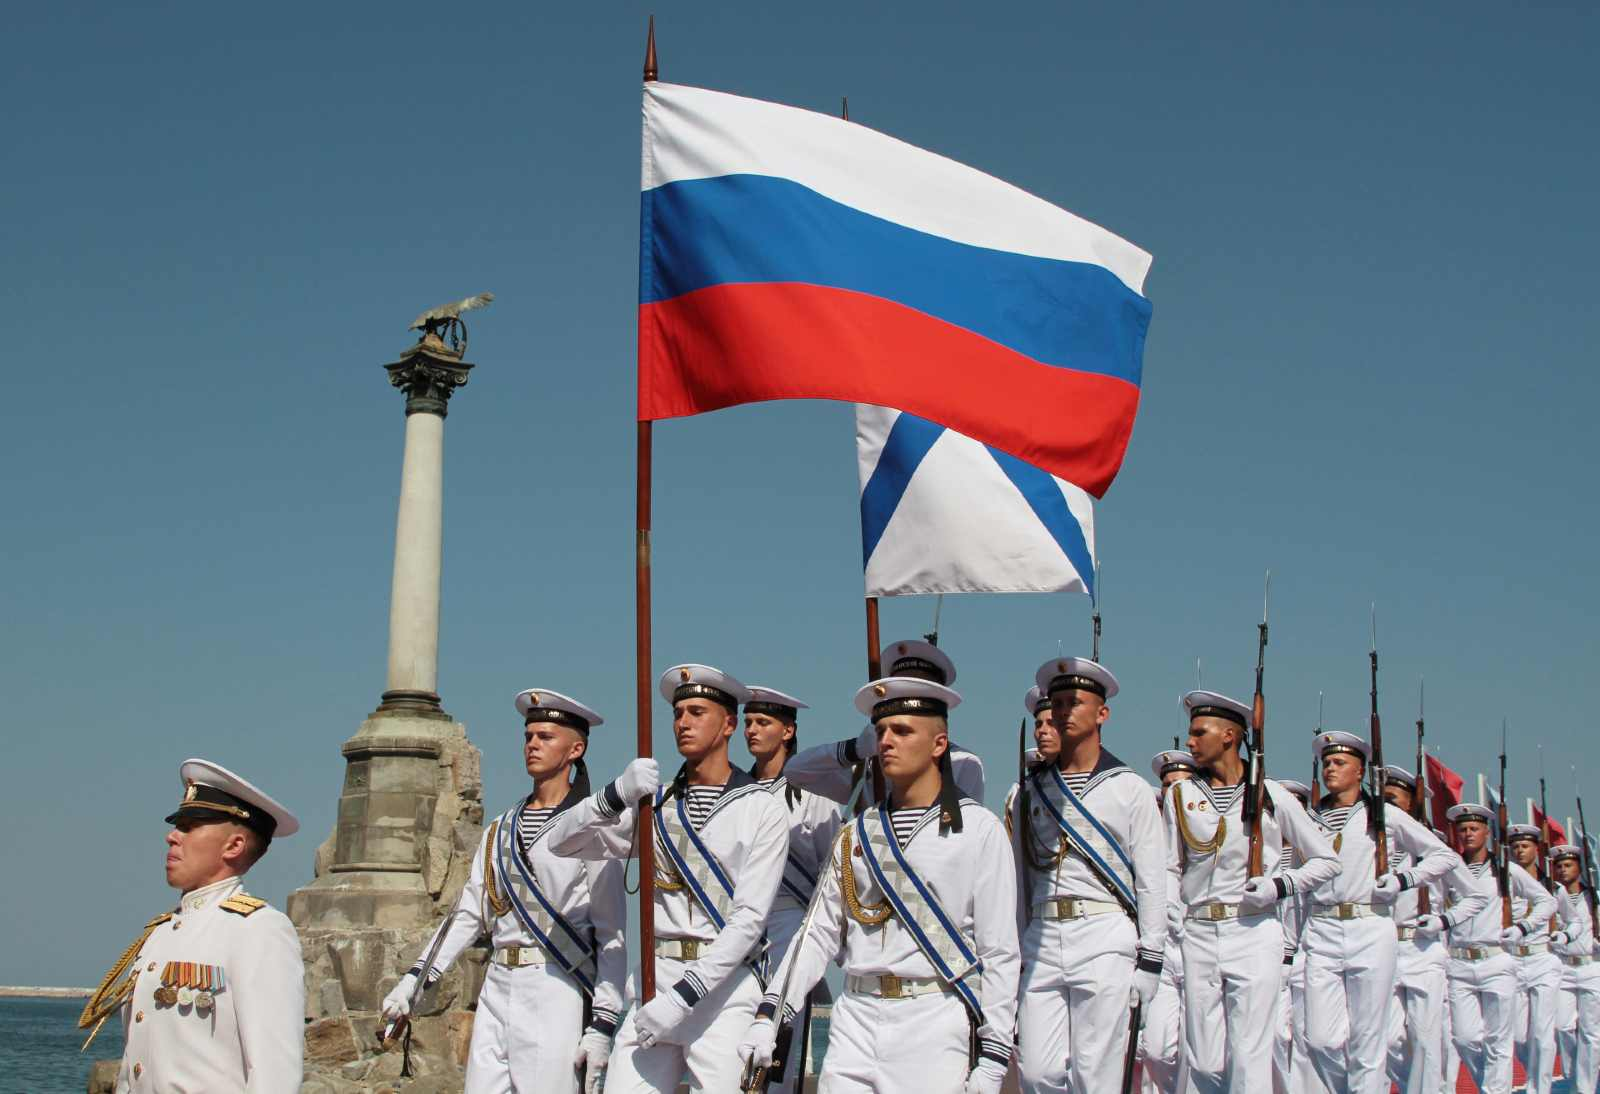 Russian sailors march during the Navy Day parade in the Black Sea port of Sevastopol, Crimea July 28, 2019. REUTERS/Alexey Pavlishak